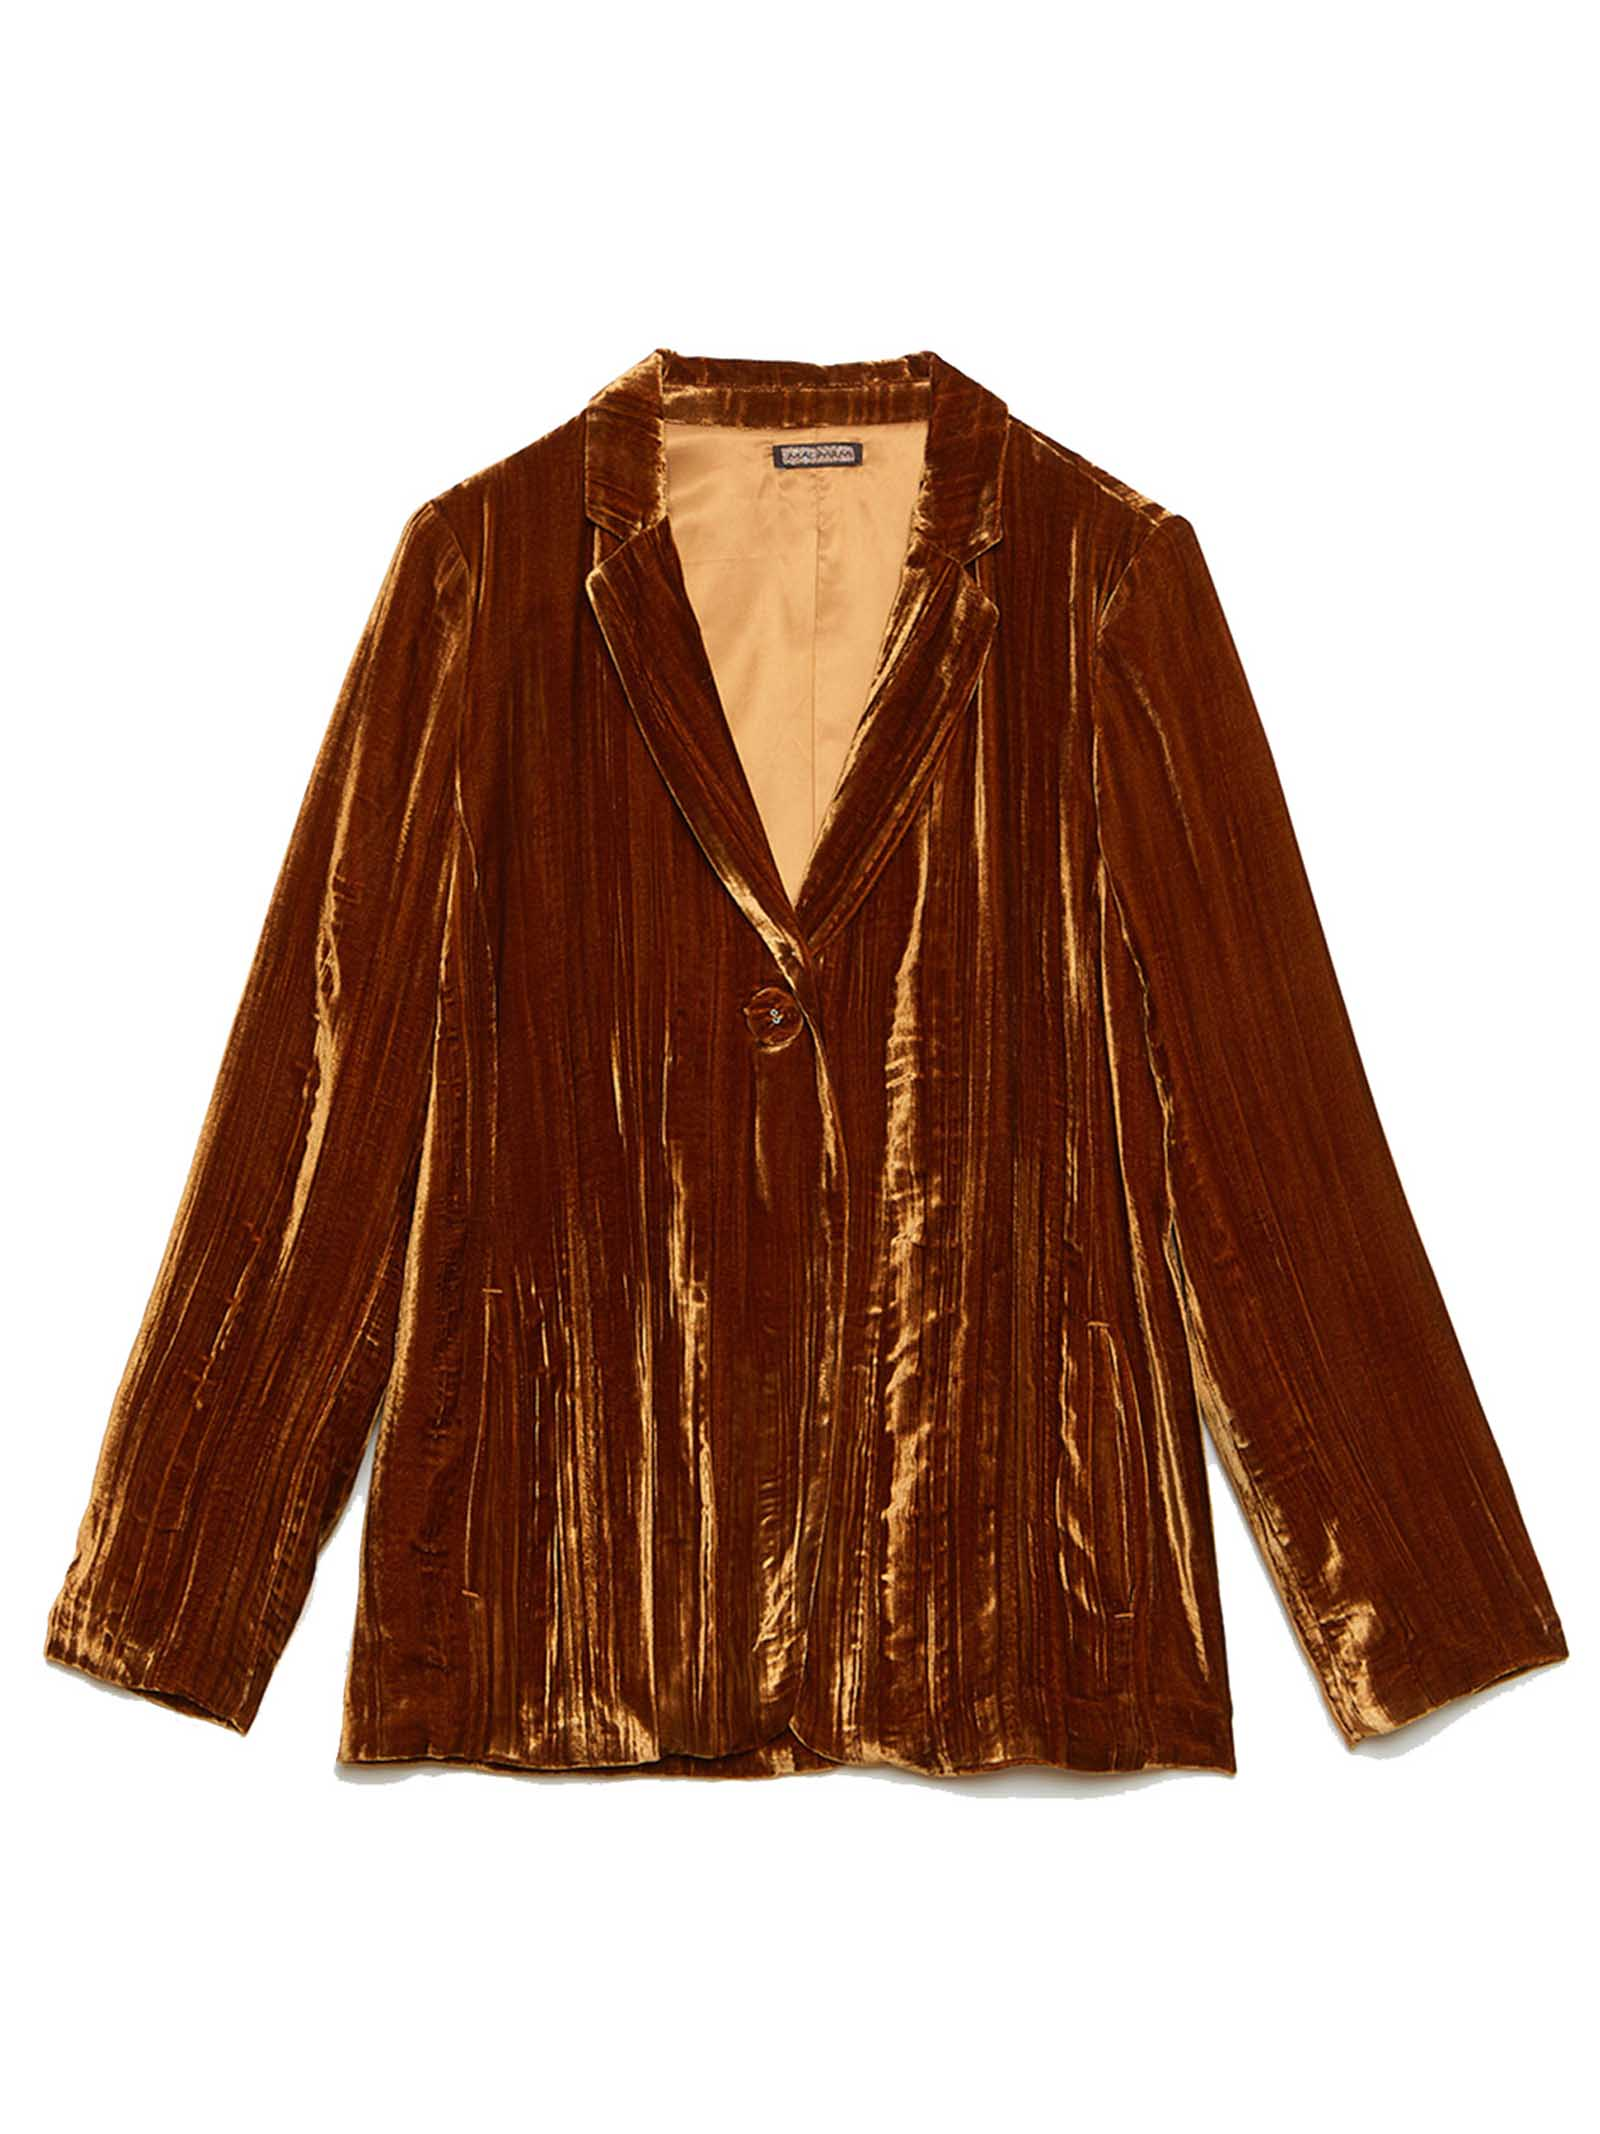 Women's Crinkle Single-breasted Jacket in Velvet and Silk Biscuit  Maliparmi | Jackets | JD62626102941004